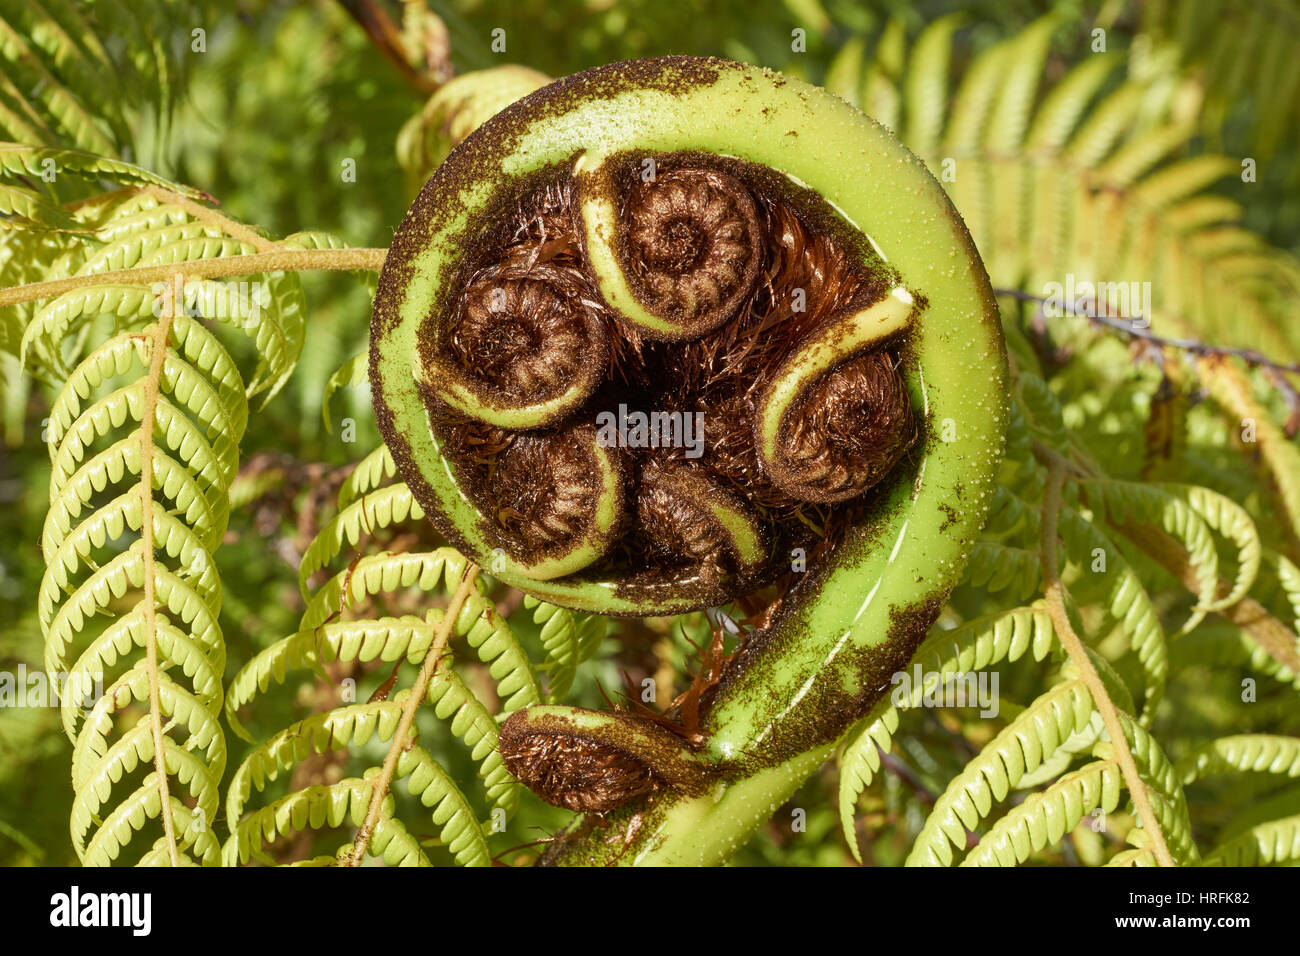 Koru unfurling frond of a new zealand black tree fern mamaku koru unfurling frond of a new zealand black tree fern mamaku the maori symbol for new beginnings biocorpaavc